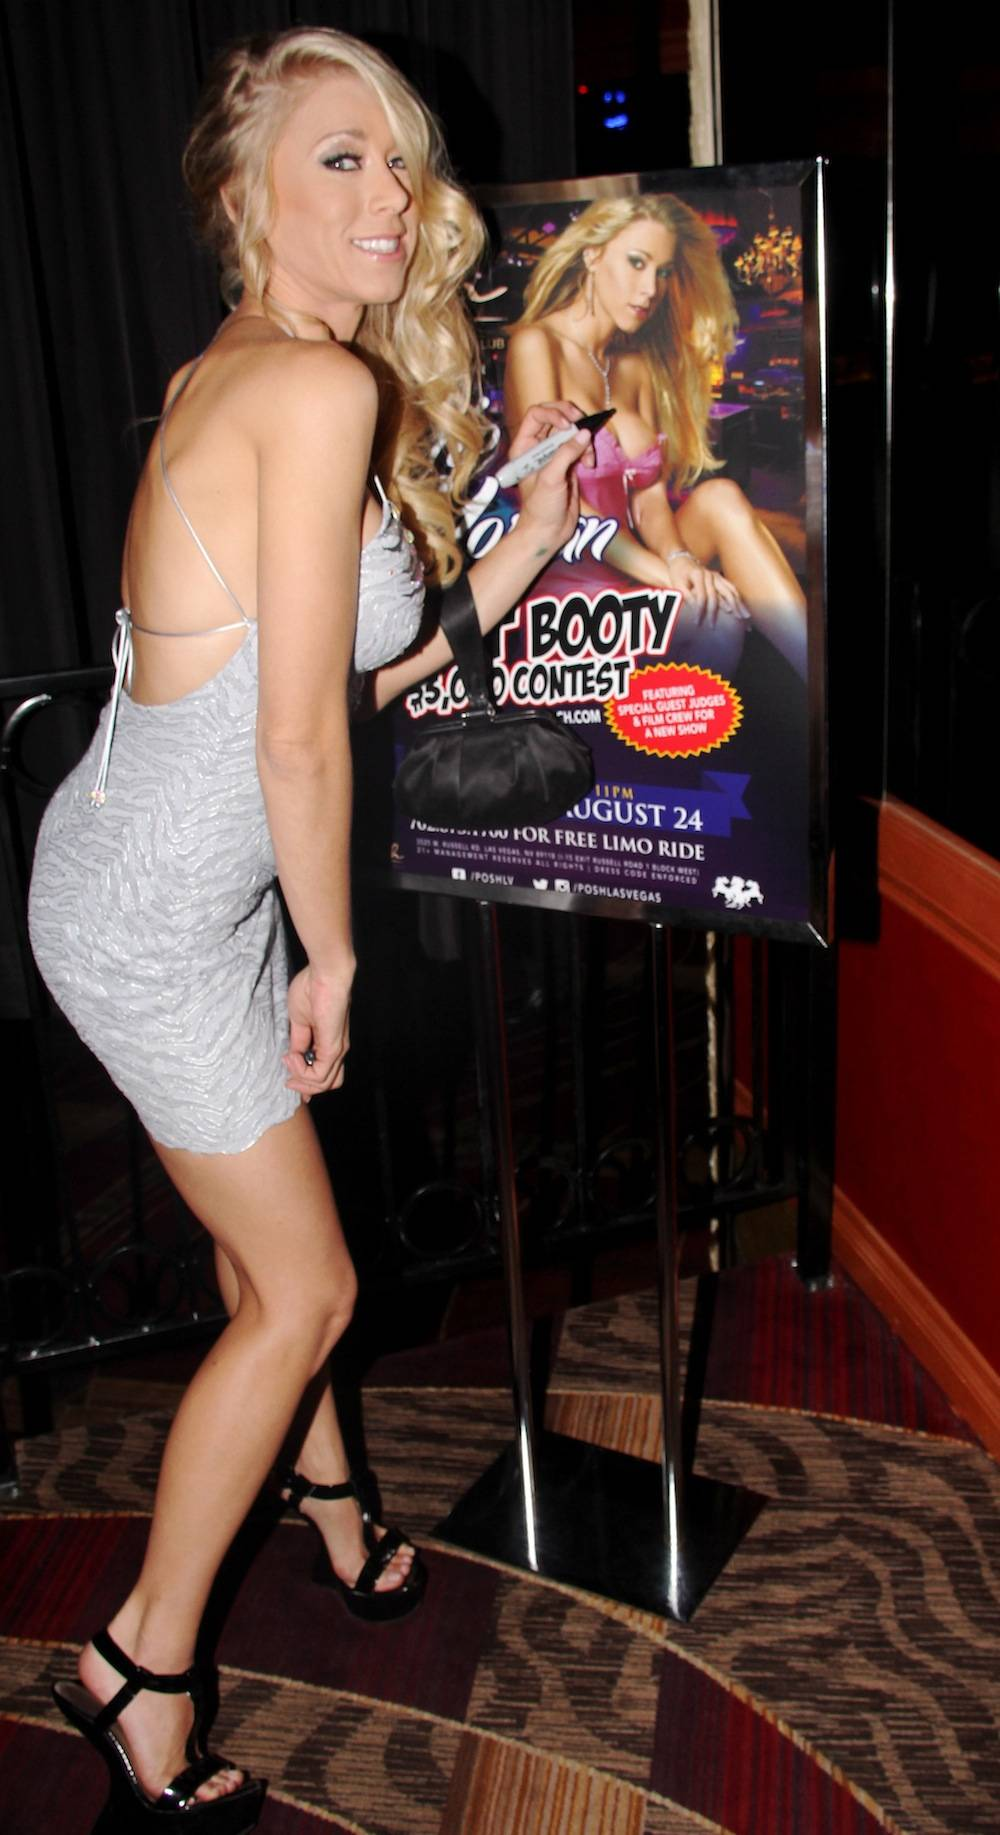 Katie Morgan signing poster at Crazy Horse III